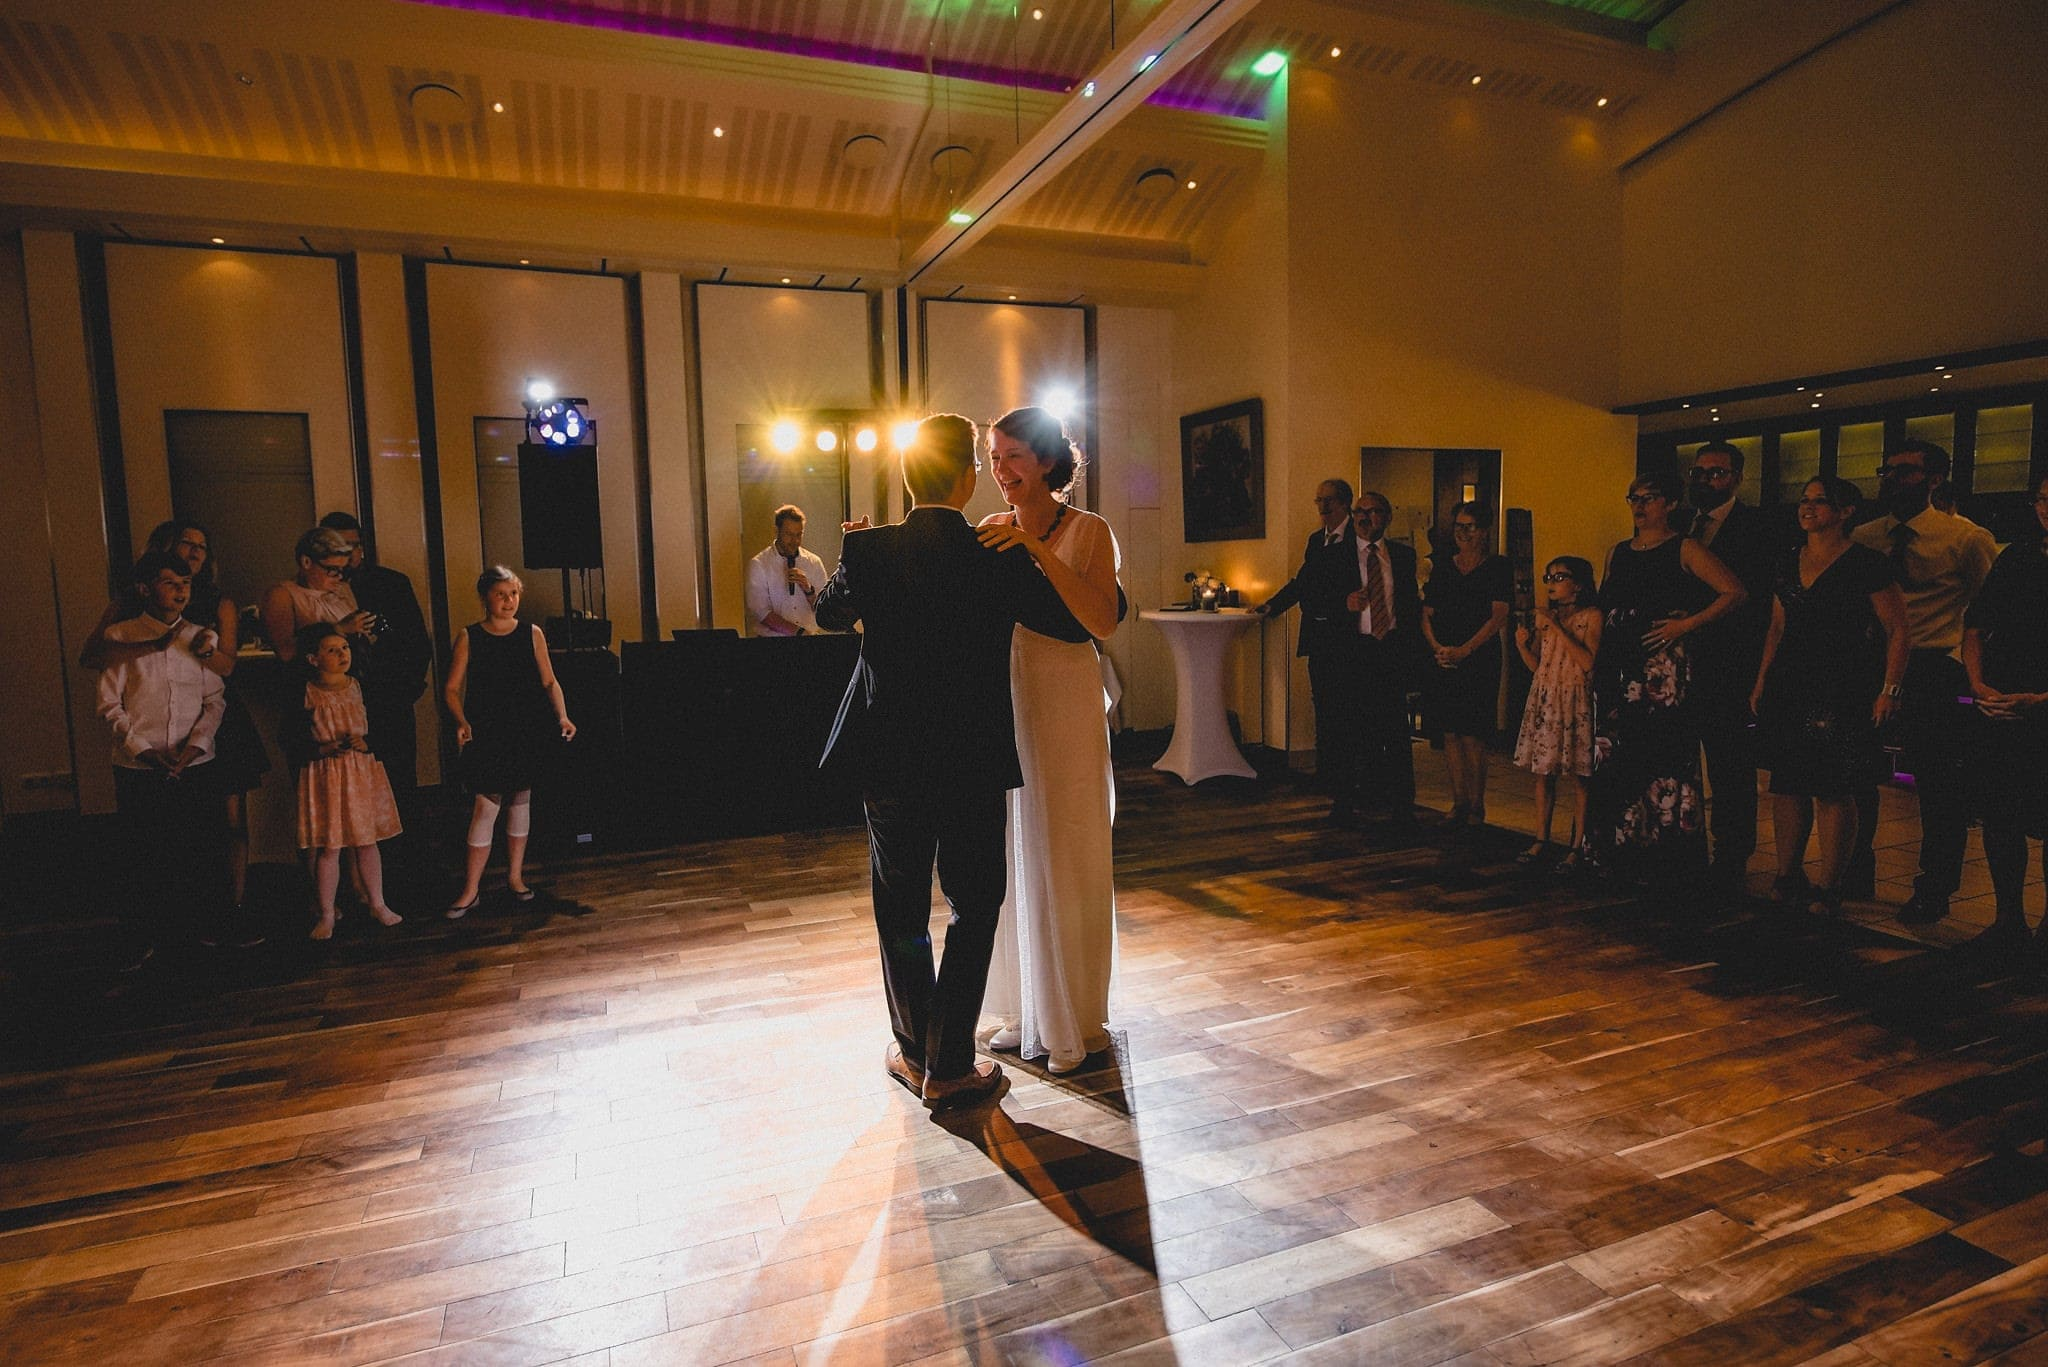 Bride and groom's First dance at their Heartfelt Destination Wedding in Germany | Maria Assia Photography